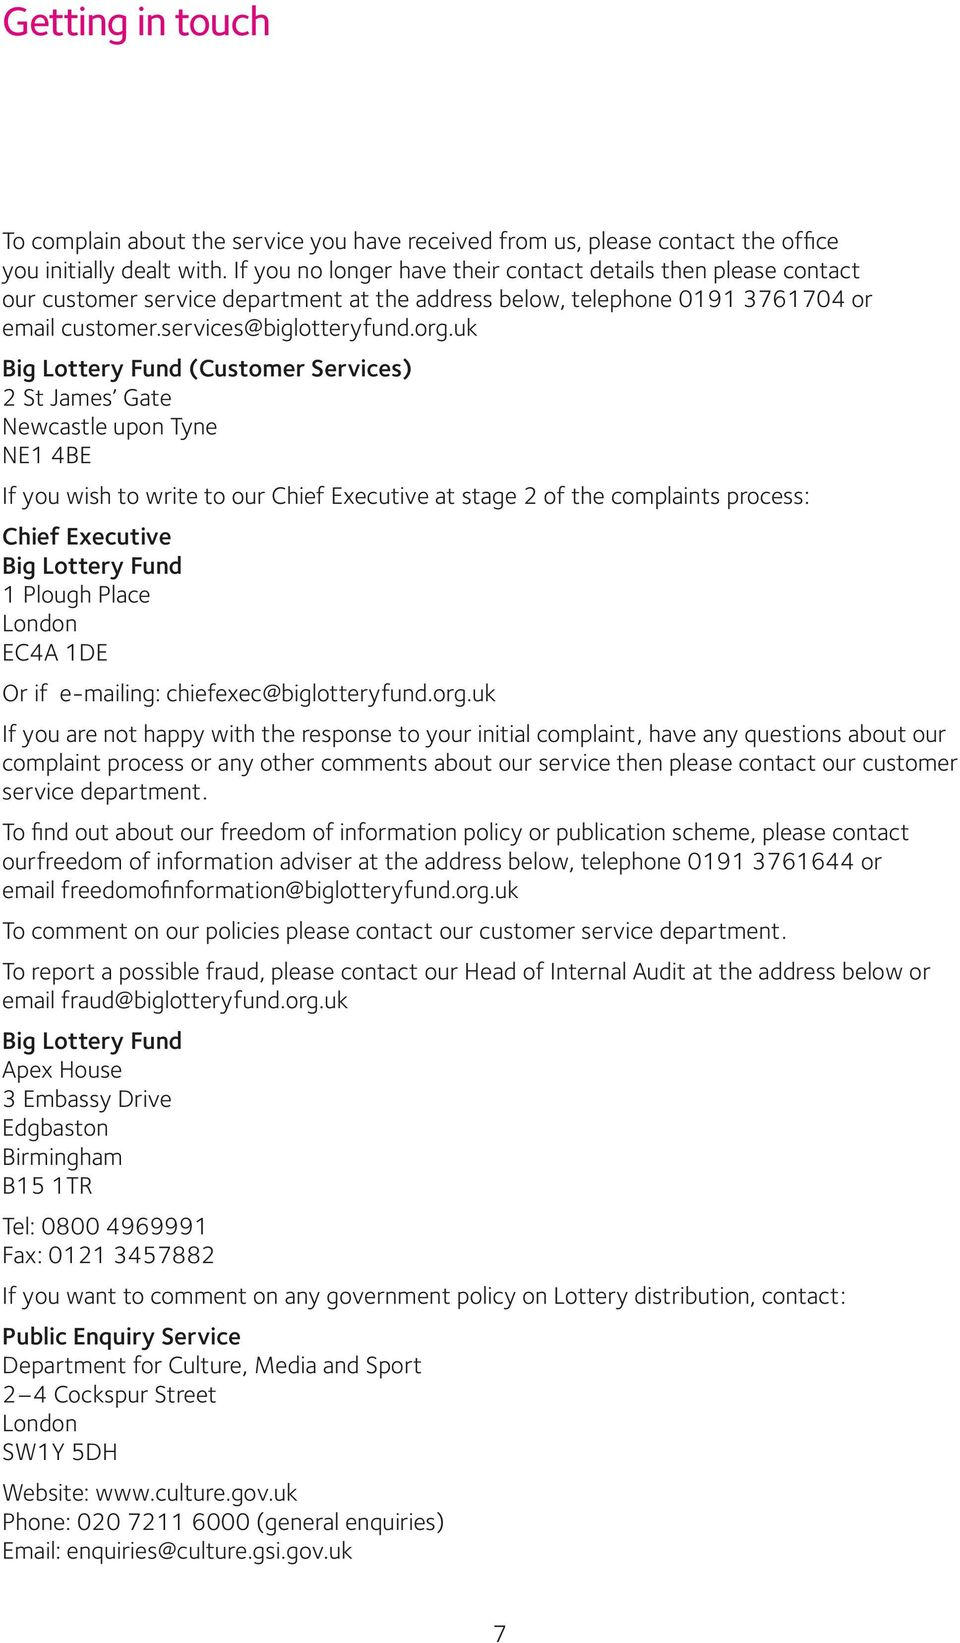 uk Big Lottery Fund (Customer Services) 2 St James Gate Newcastle upon Tyne NE1 4BE If you wish to write to our Chief Executive at stage 2 of the complaints process: Chief Executive Big Lottery Fund